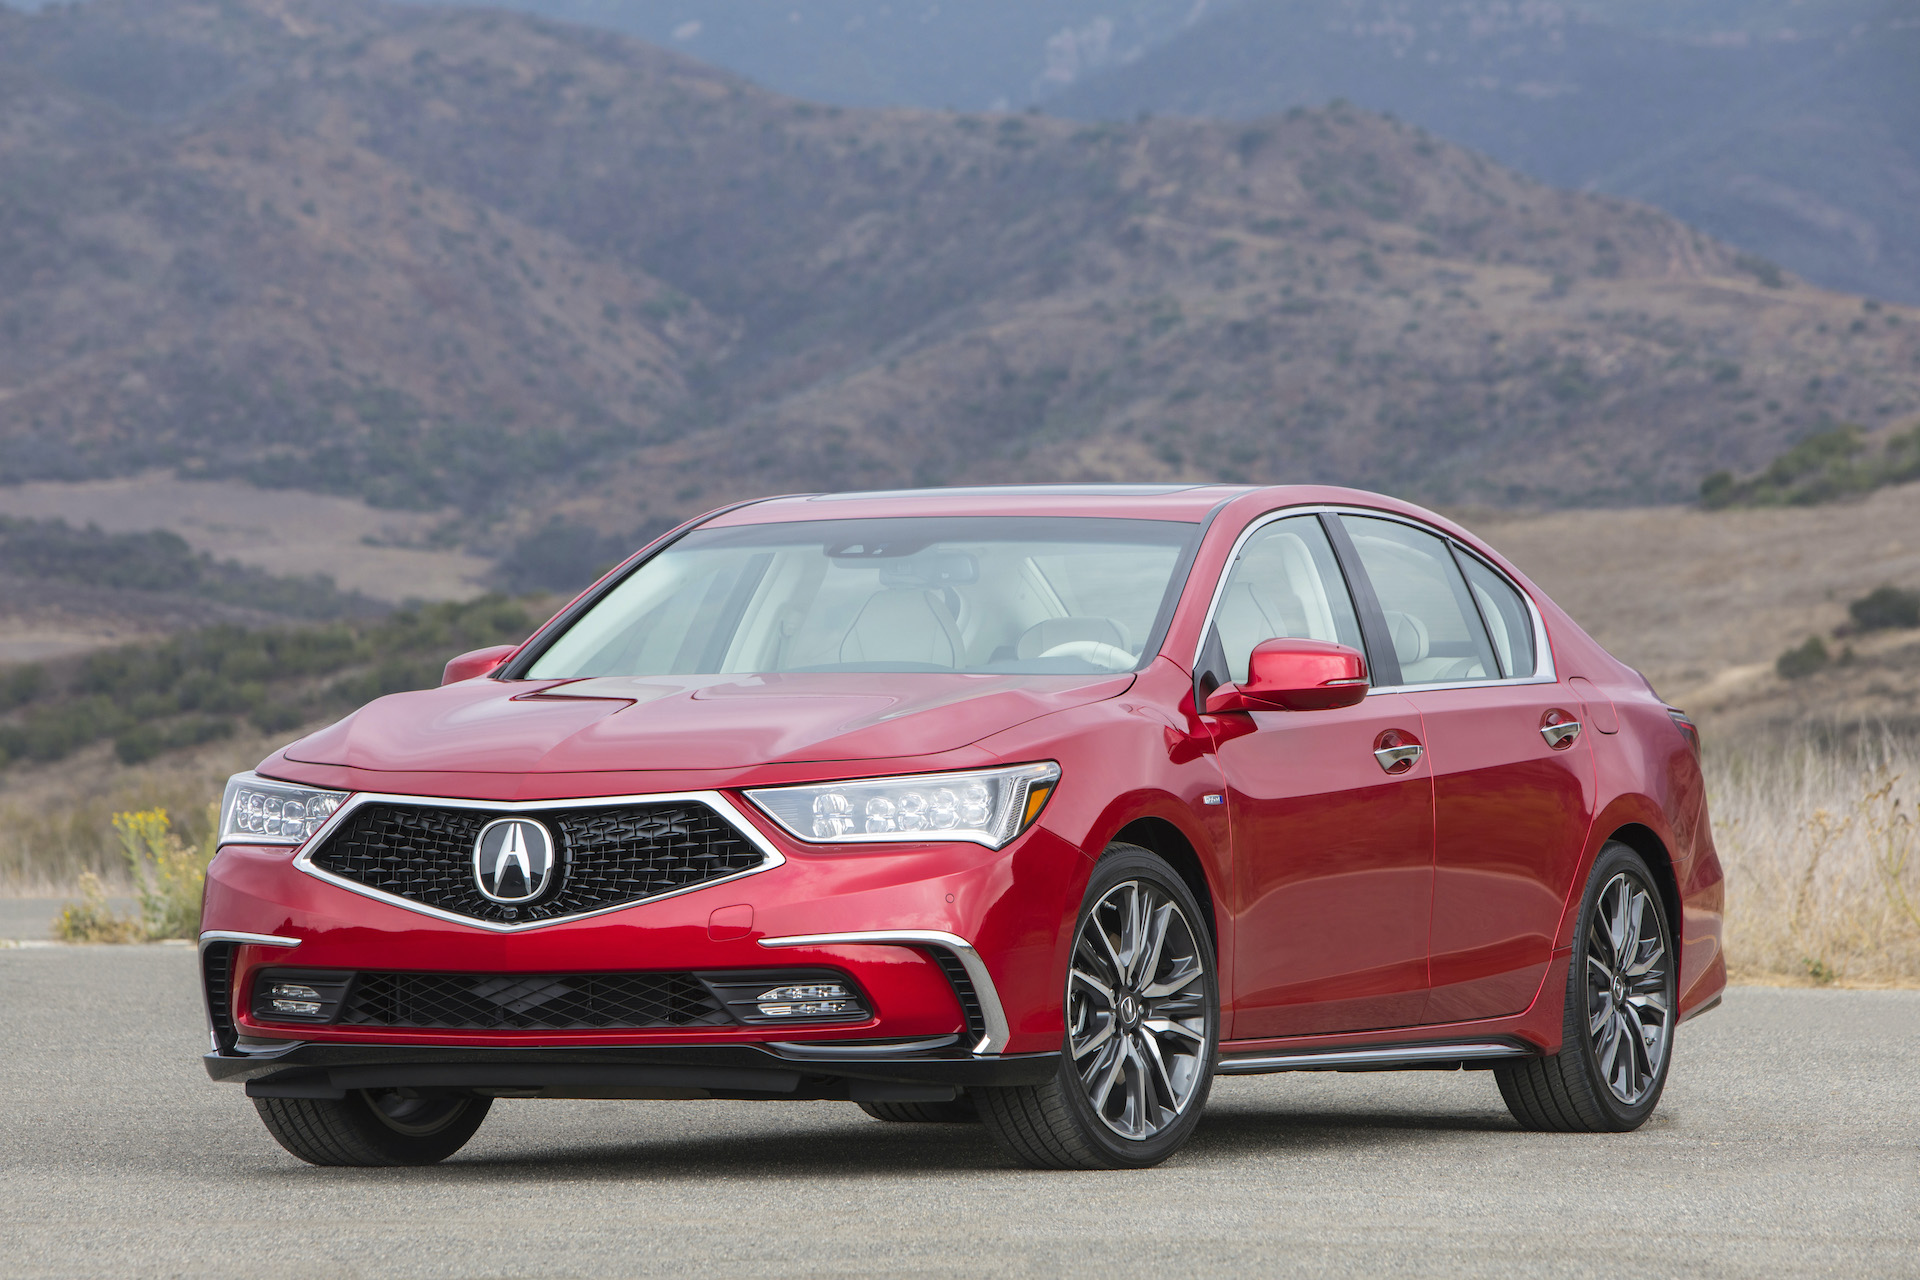 Acura RLX to bow out after 3